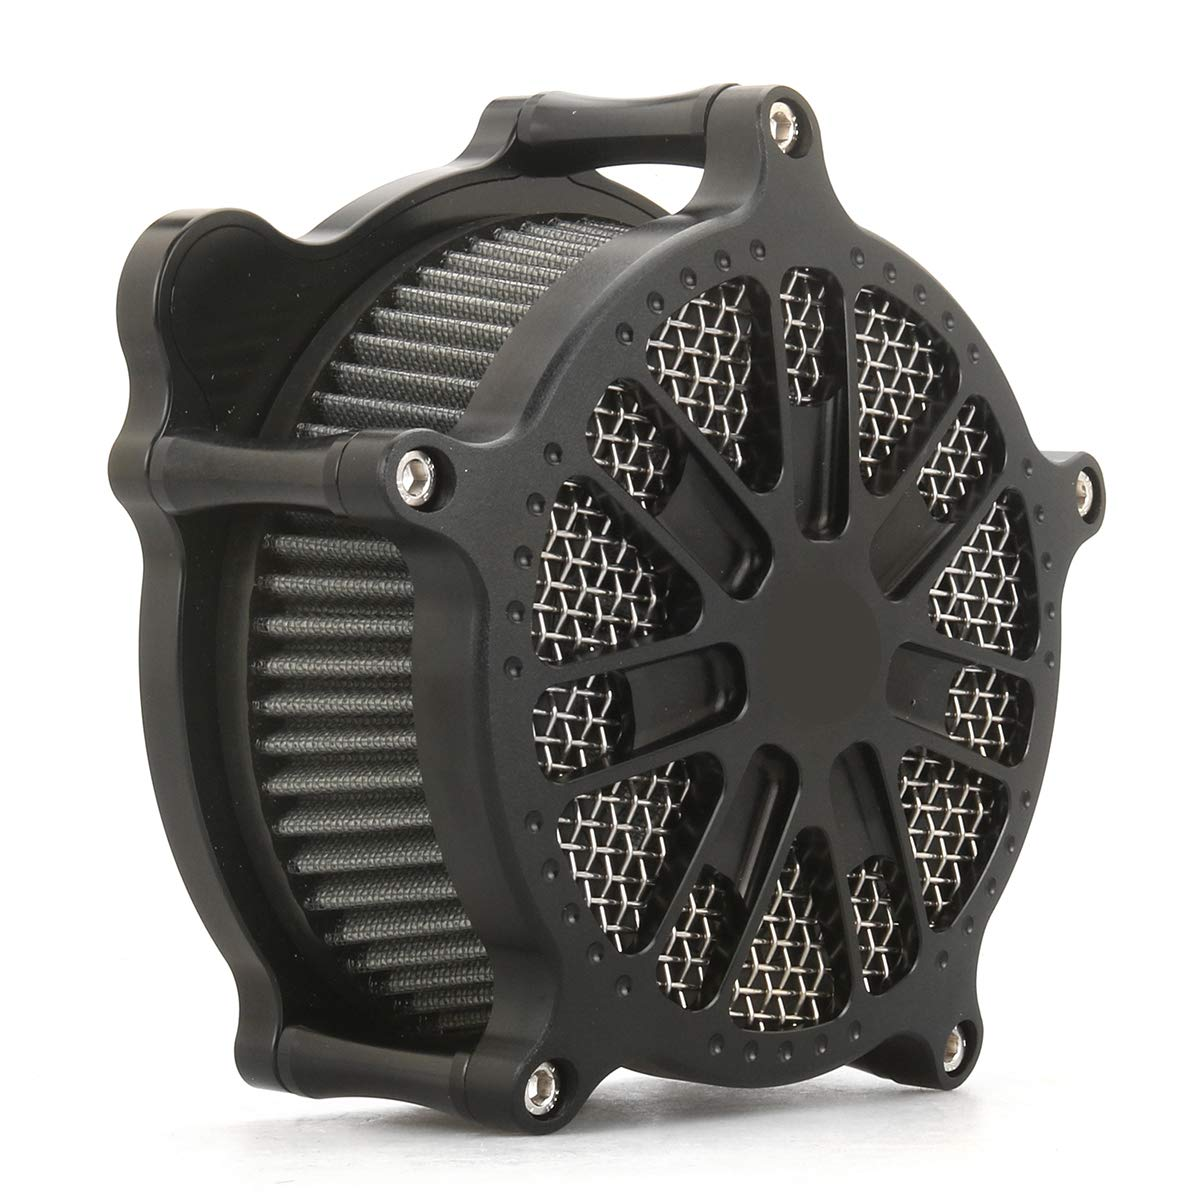 BLACK VENTURI AIR CLEANER INTAKE COVER for harley sportster XL 1991-2019 air filters sportster 883 1200